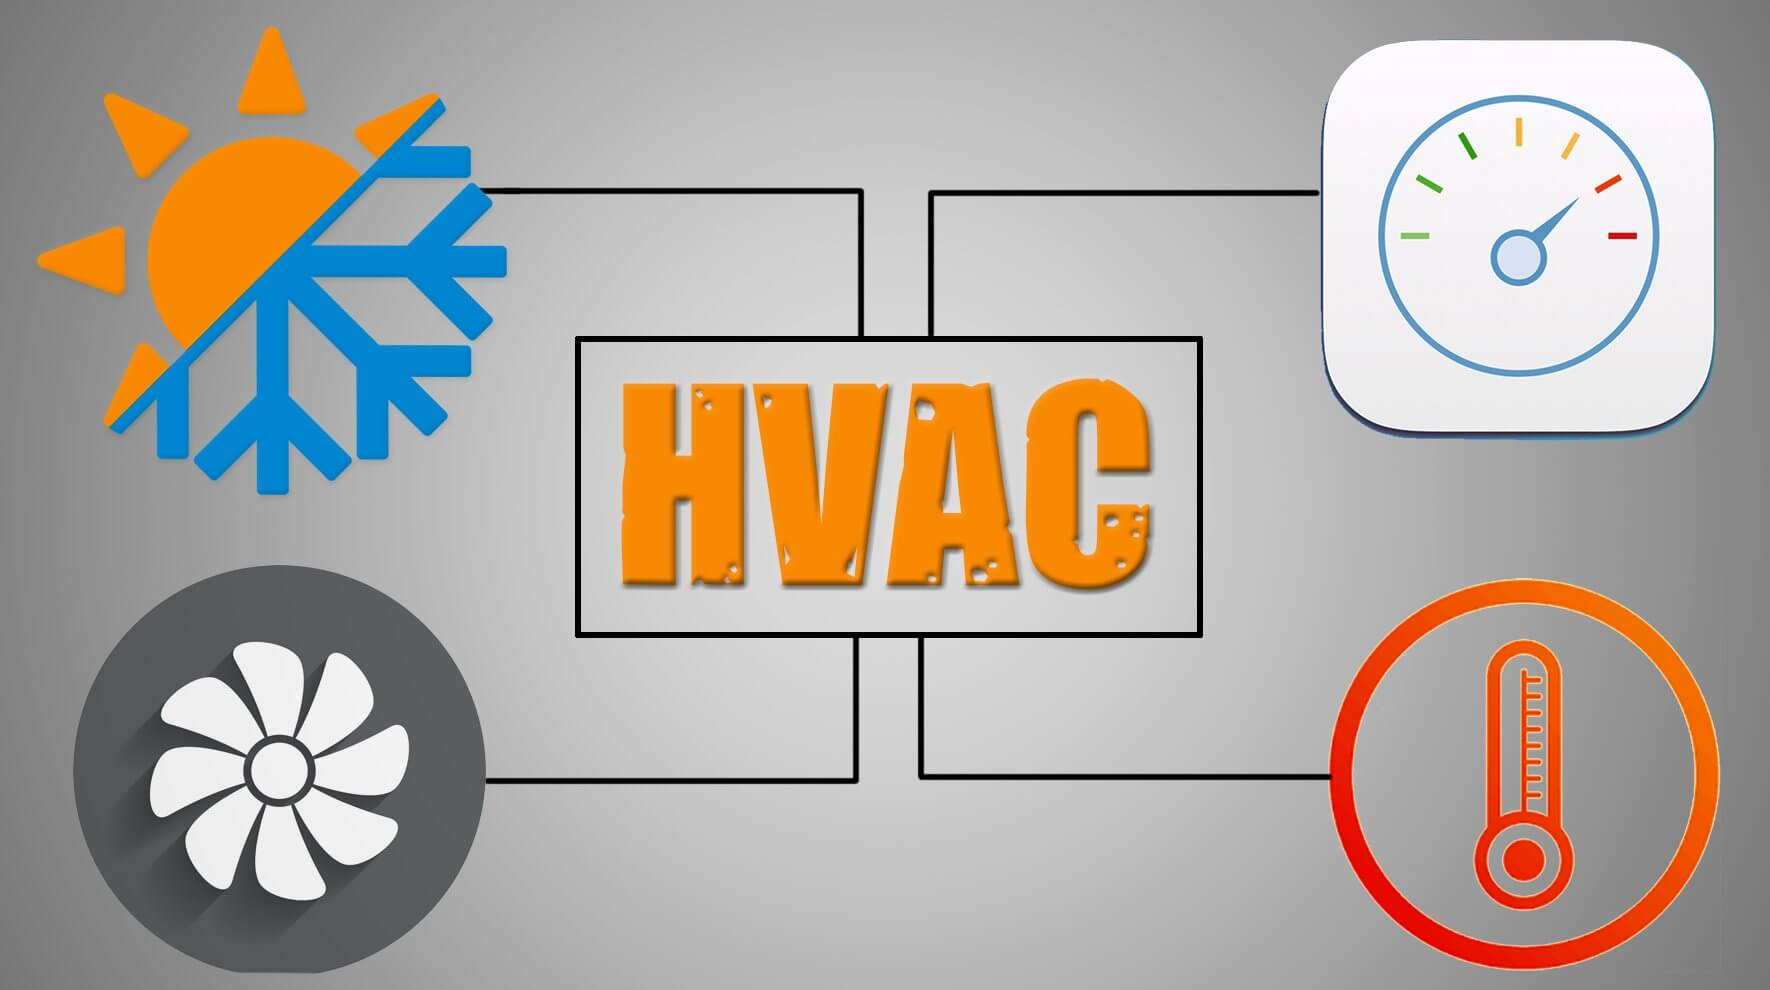 HVAC compatible thermostats